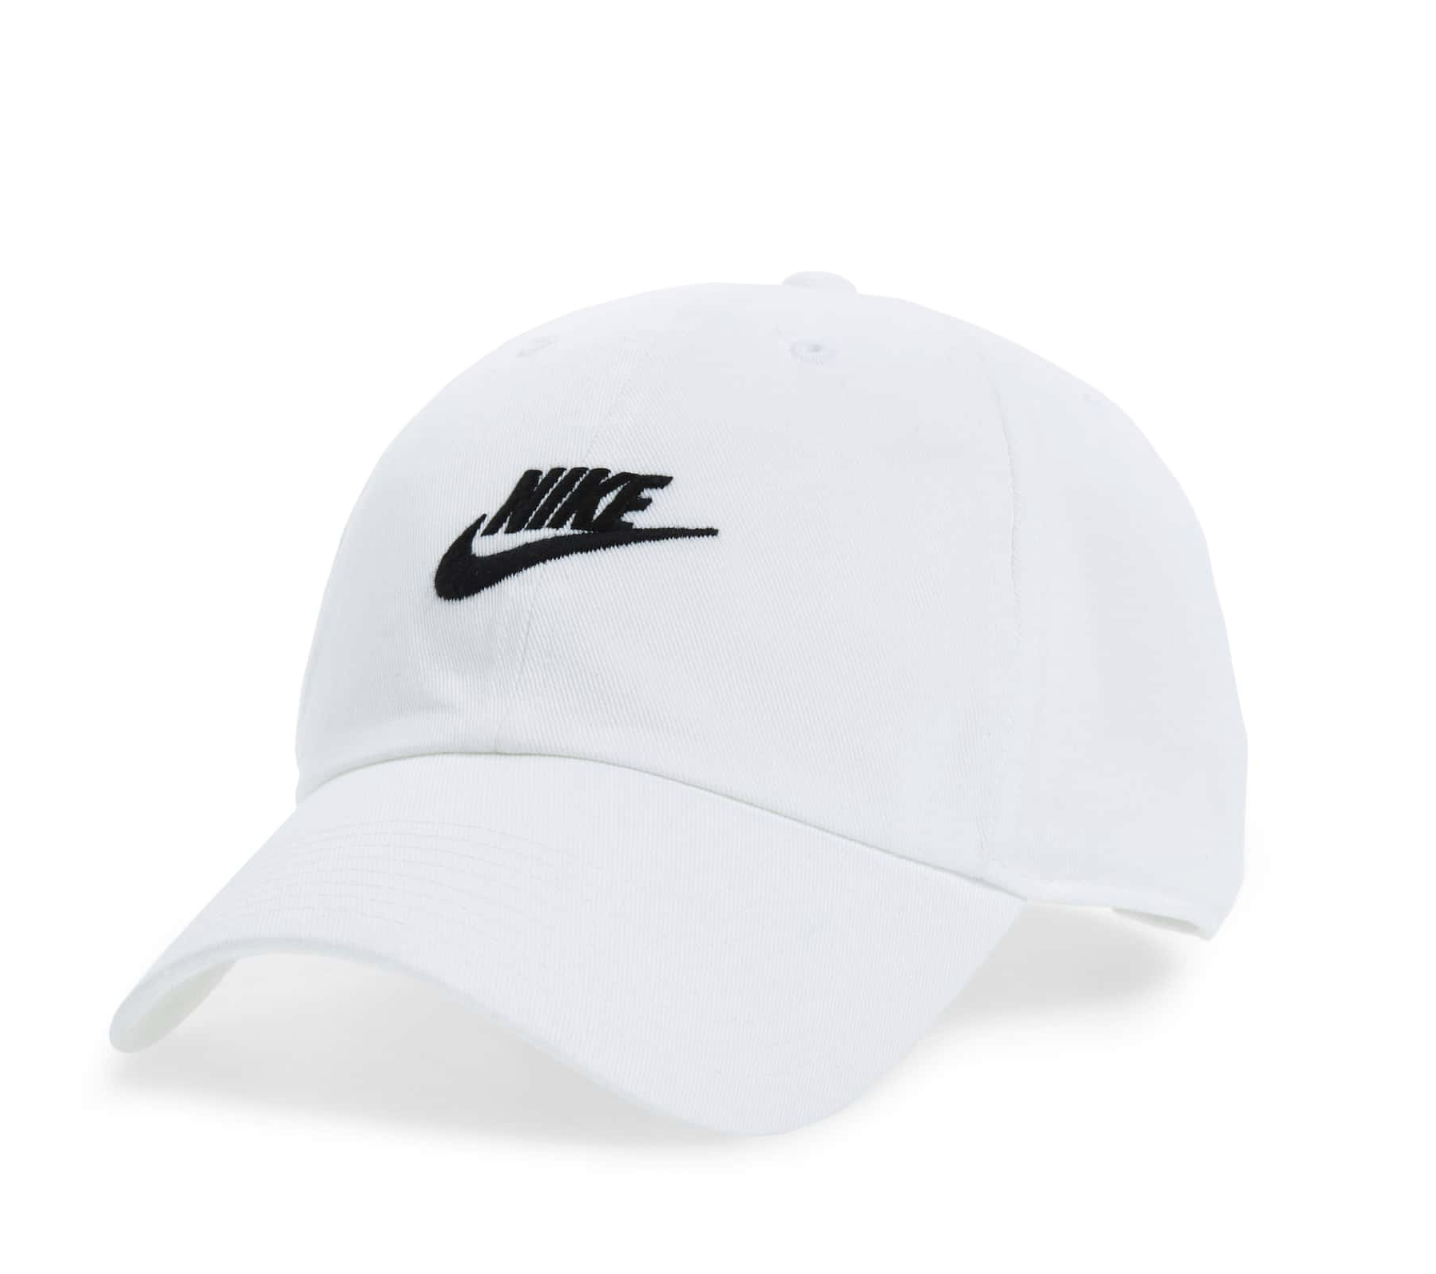 NIKE FUTURA HAT: $22 - Made for you.